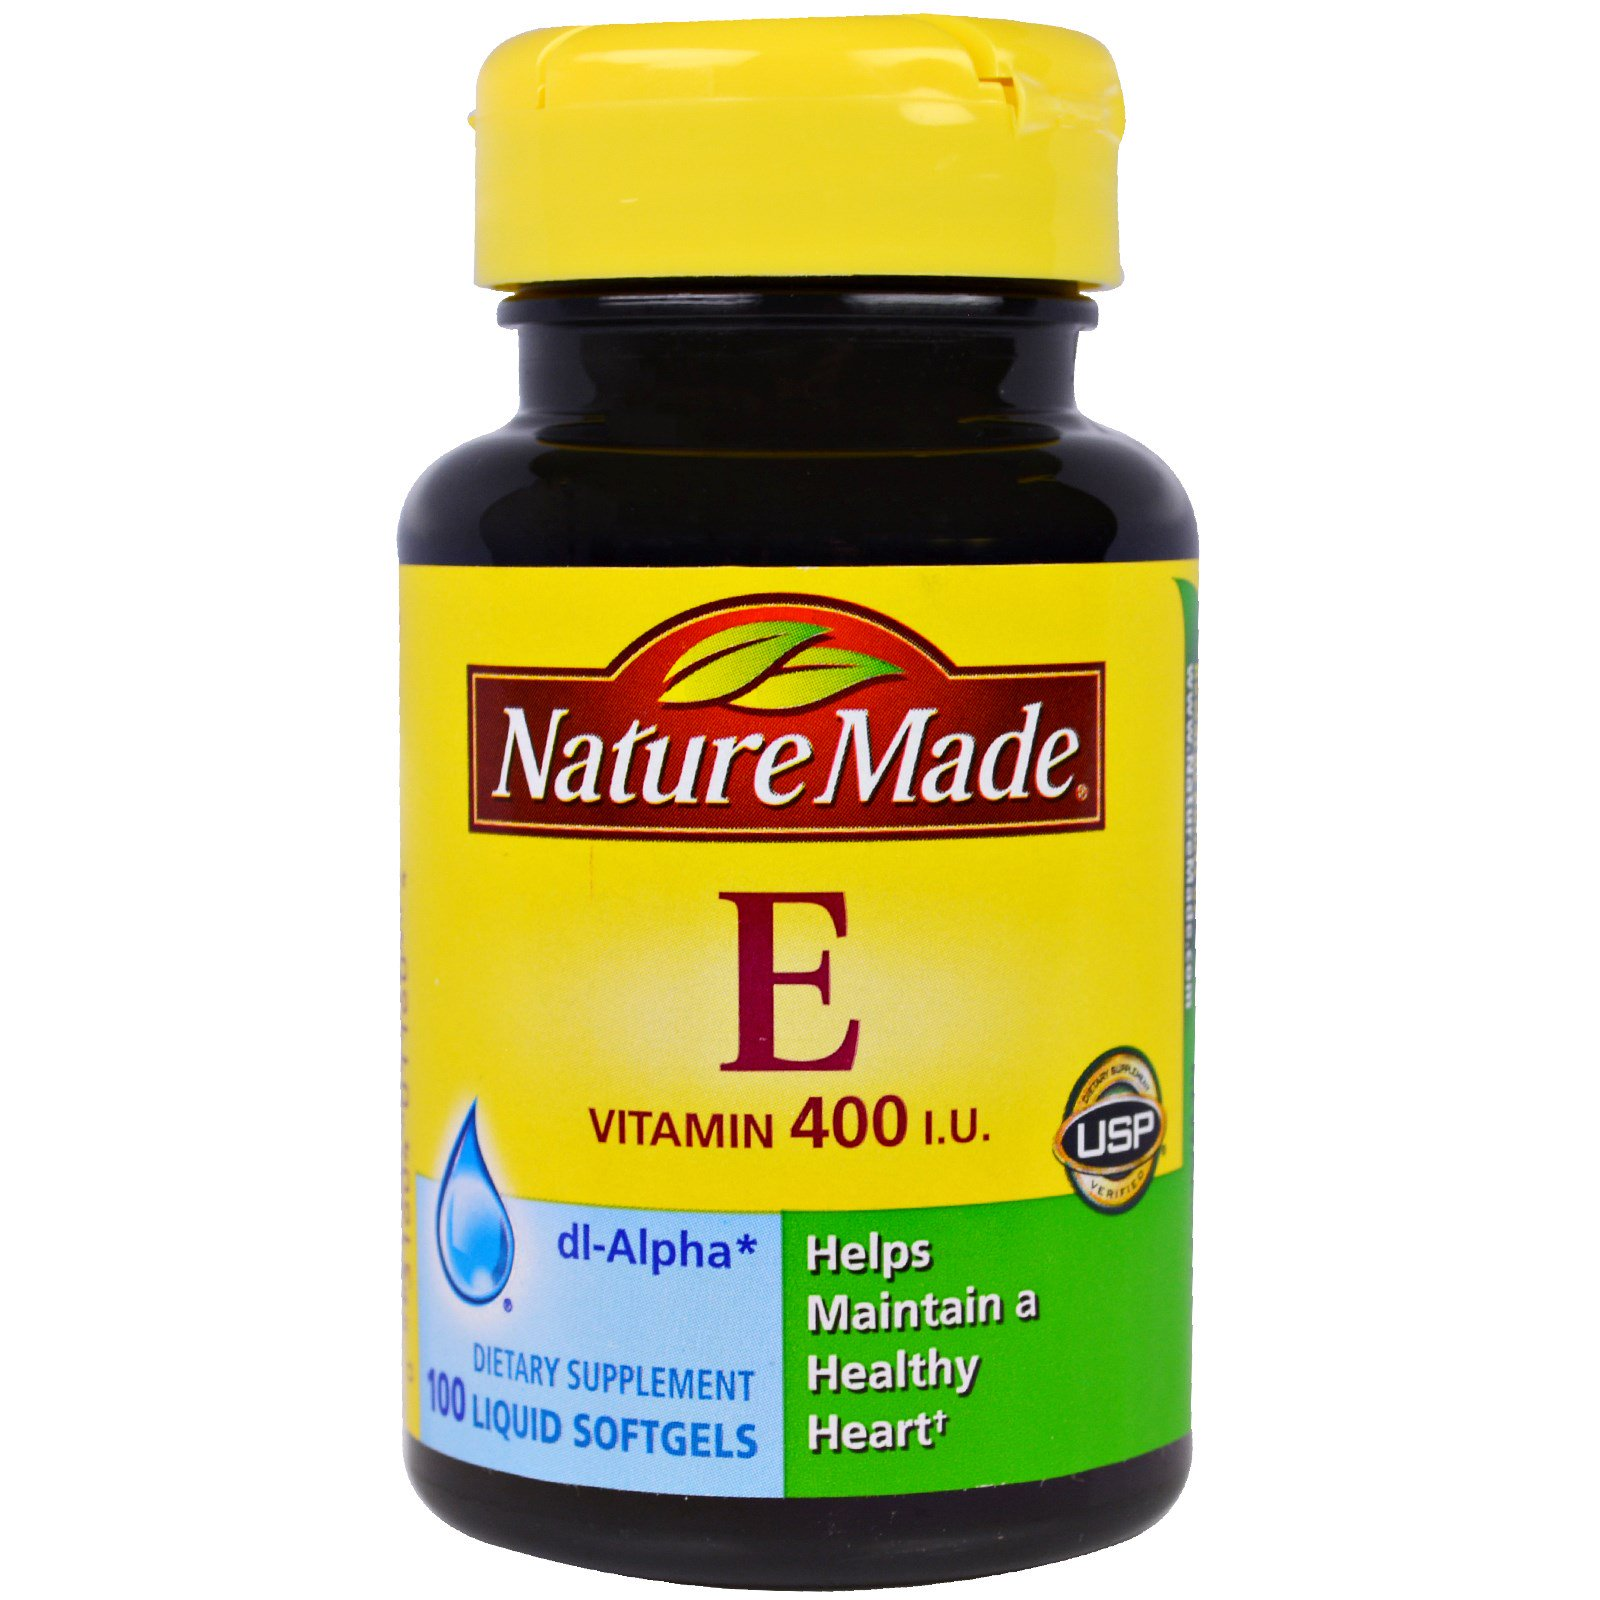 Nature Made, Vitamin E, 400IU, dl-Alpha, 100 Liquid Softgels